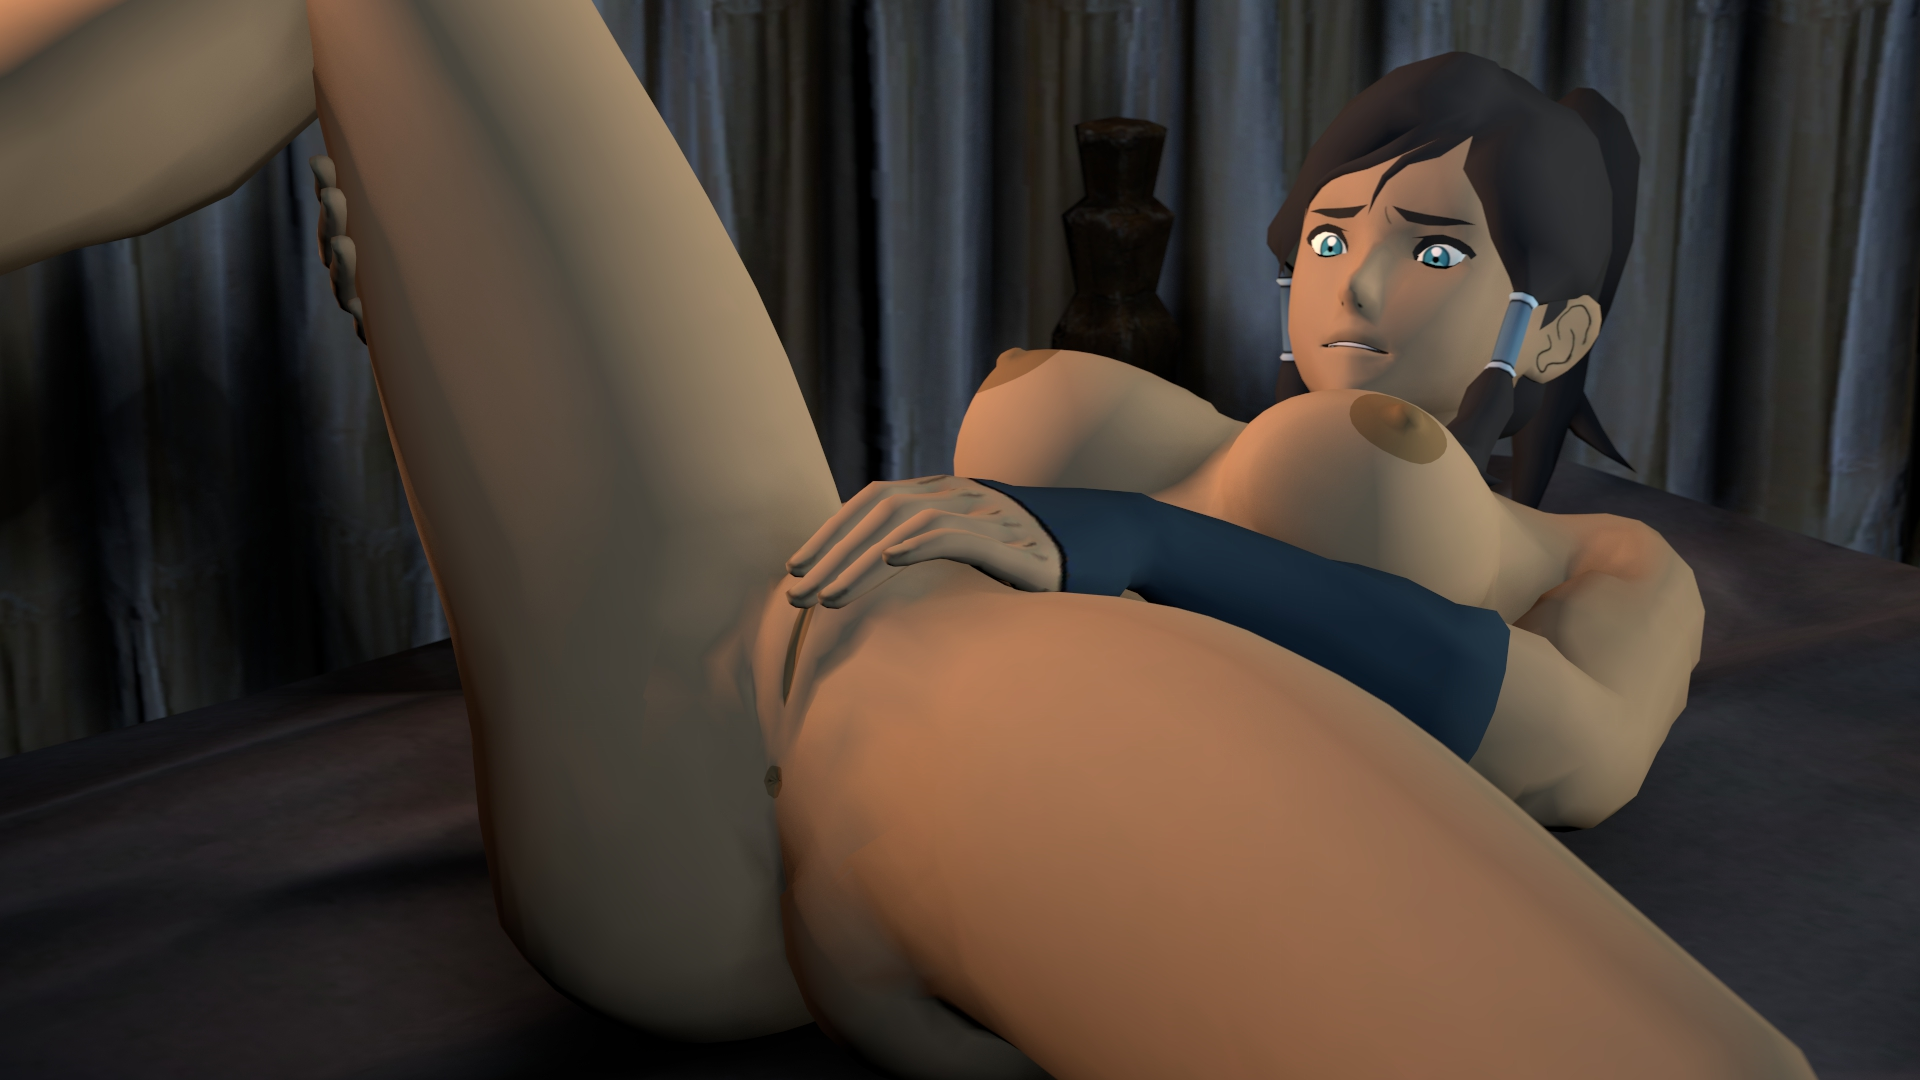 3d avatar sex hentai image sexual scene